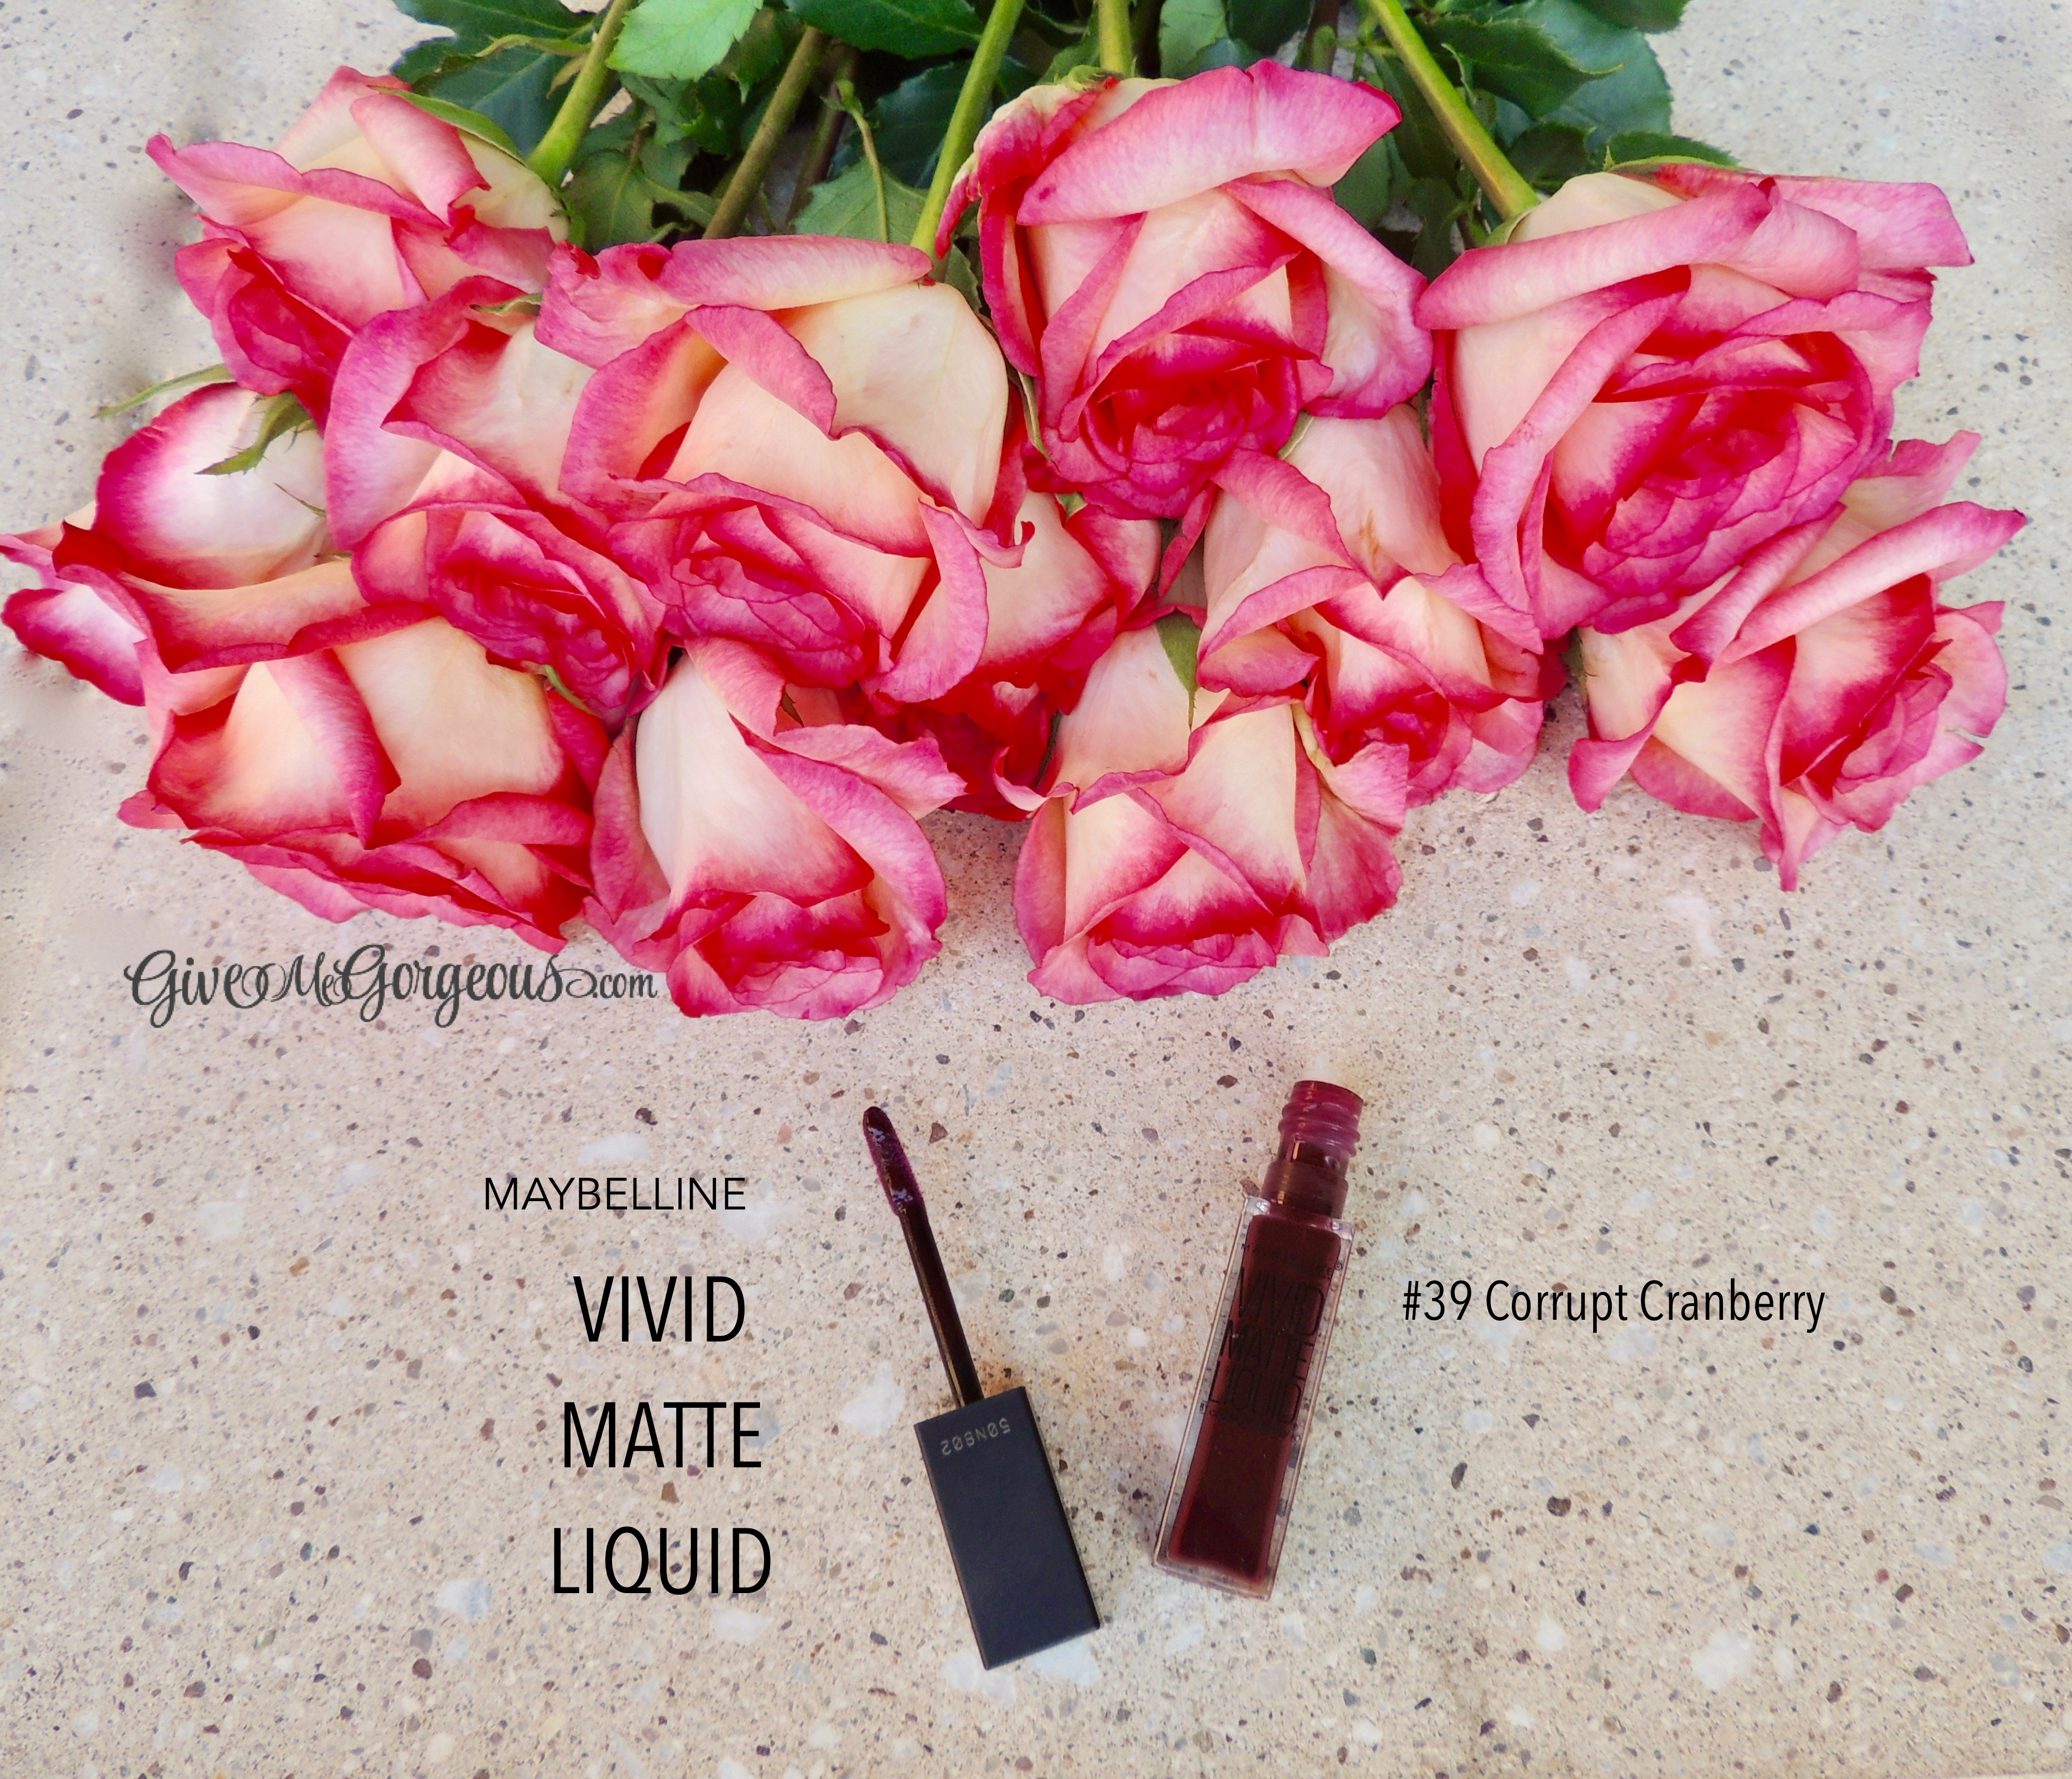 Maybelline Vivid Matte Liquid Lip Color In Corrupt Cranberry Give Sensational Lipstick Target Among Others Sells Maybellines Sensation 20 Shades This Highly Pigmented Formula Comes Some More Daring